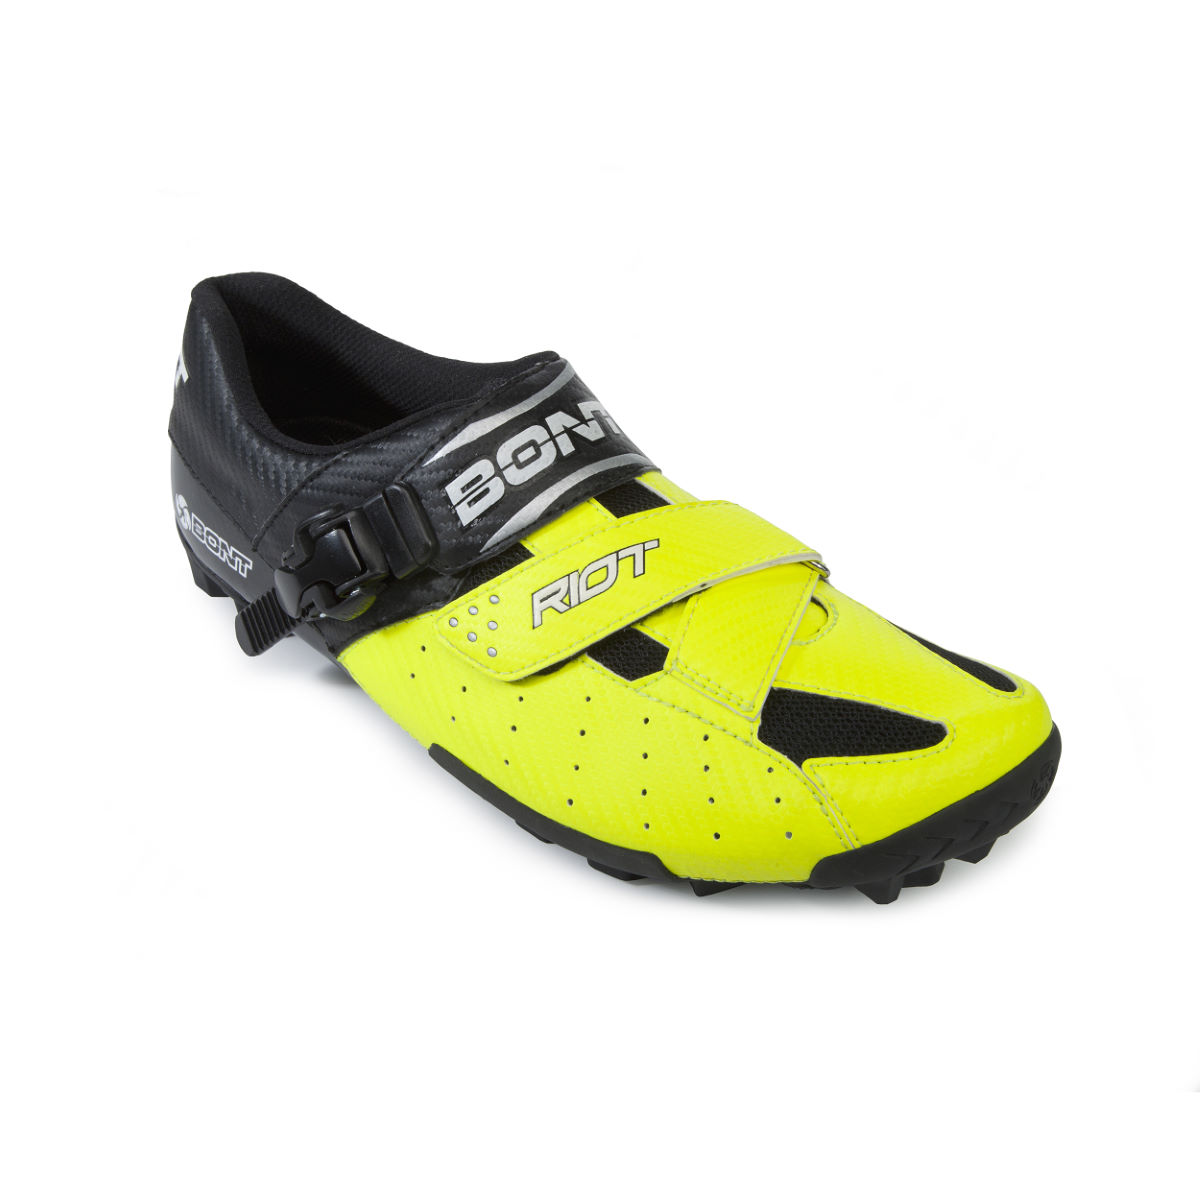 Bont Riot Fluro MTB Shoe Offroad Shoes